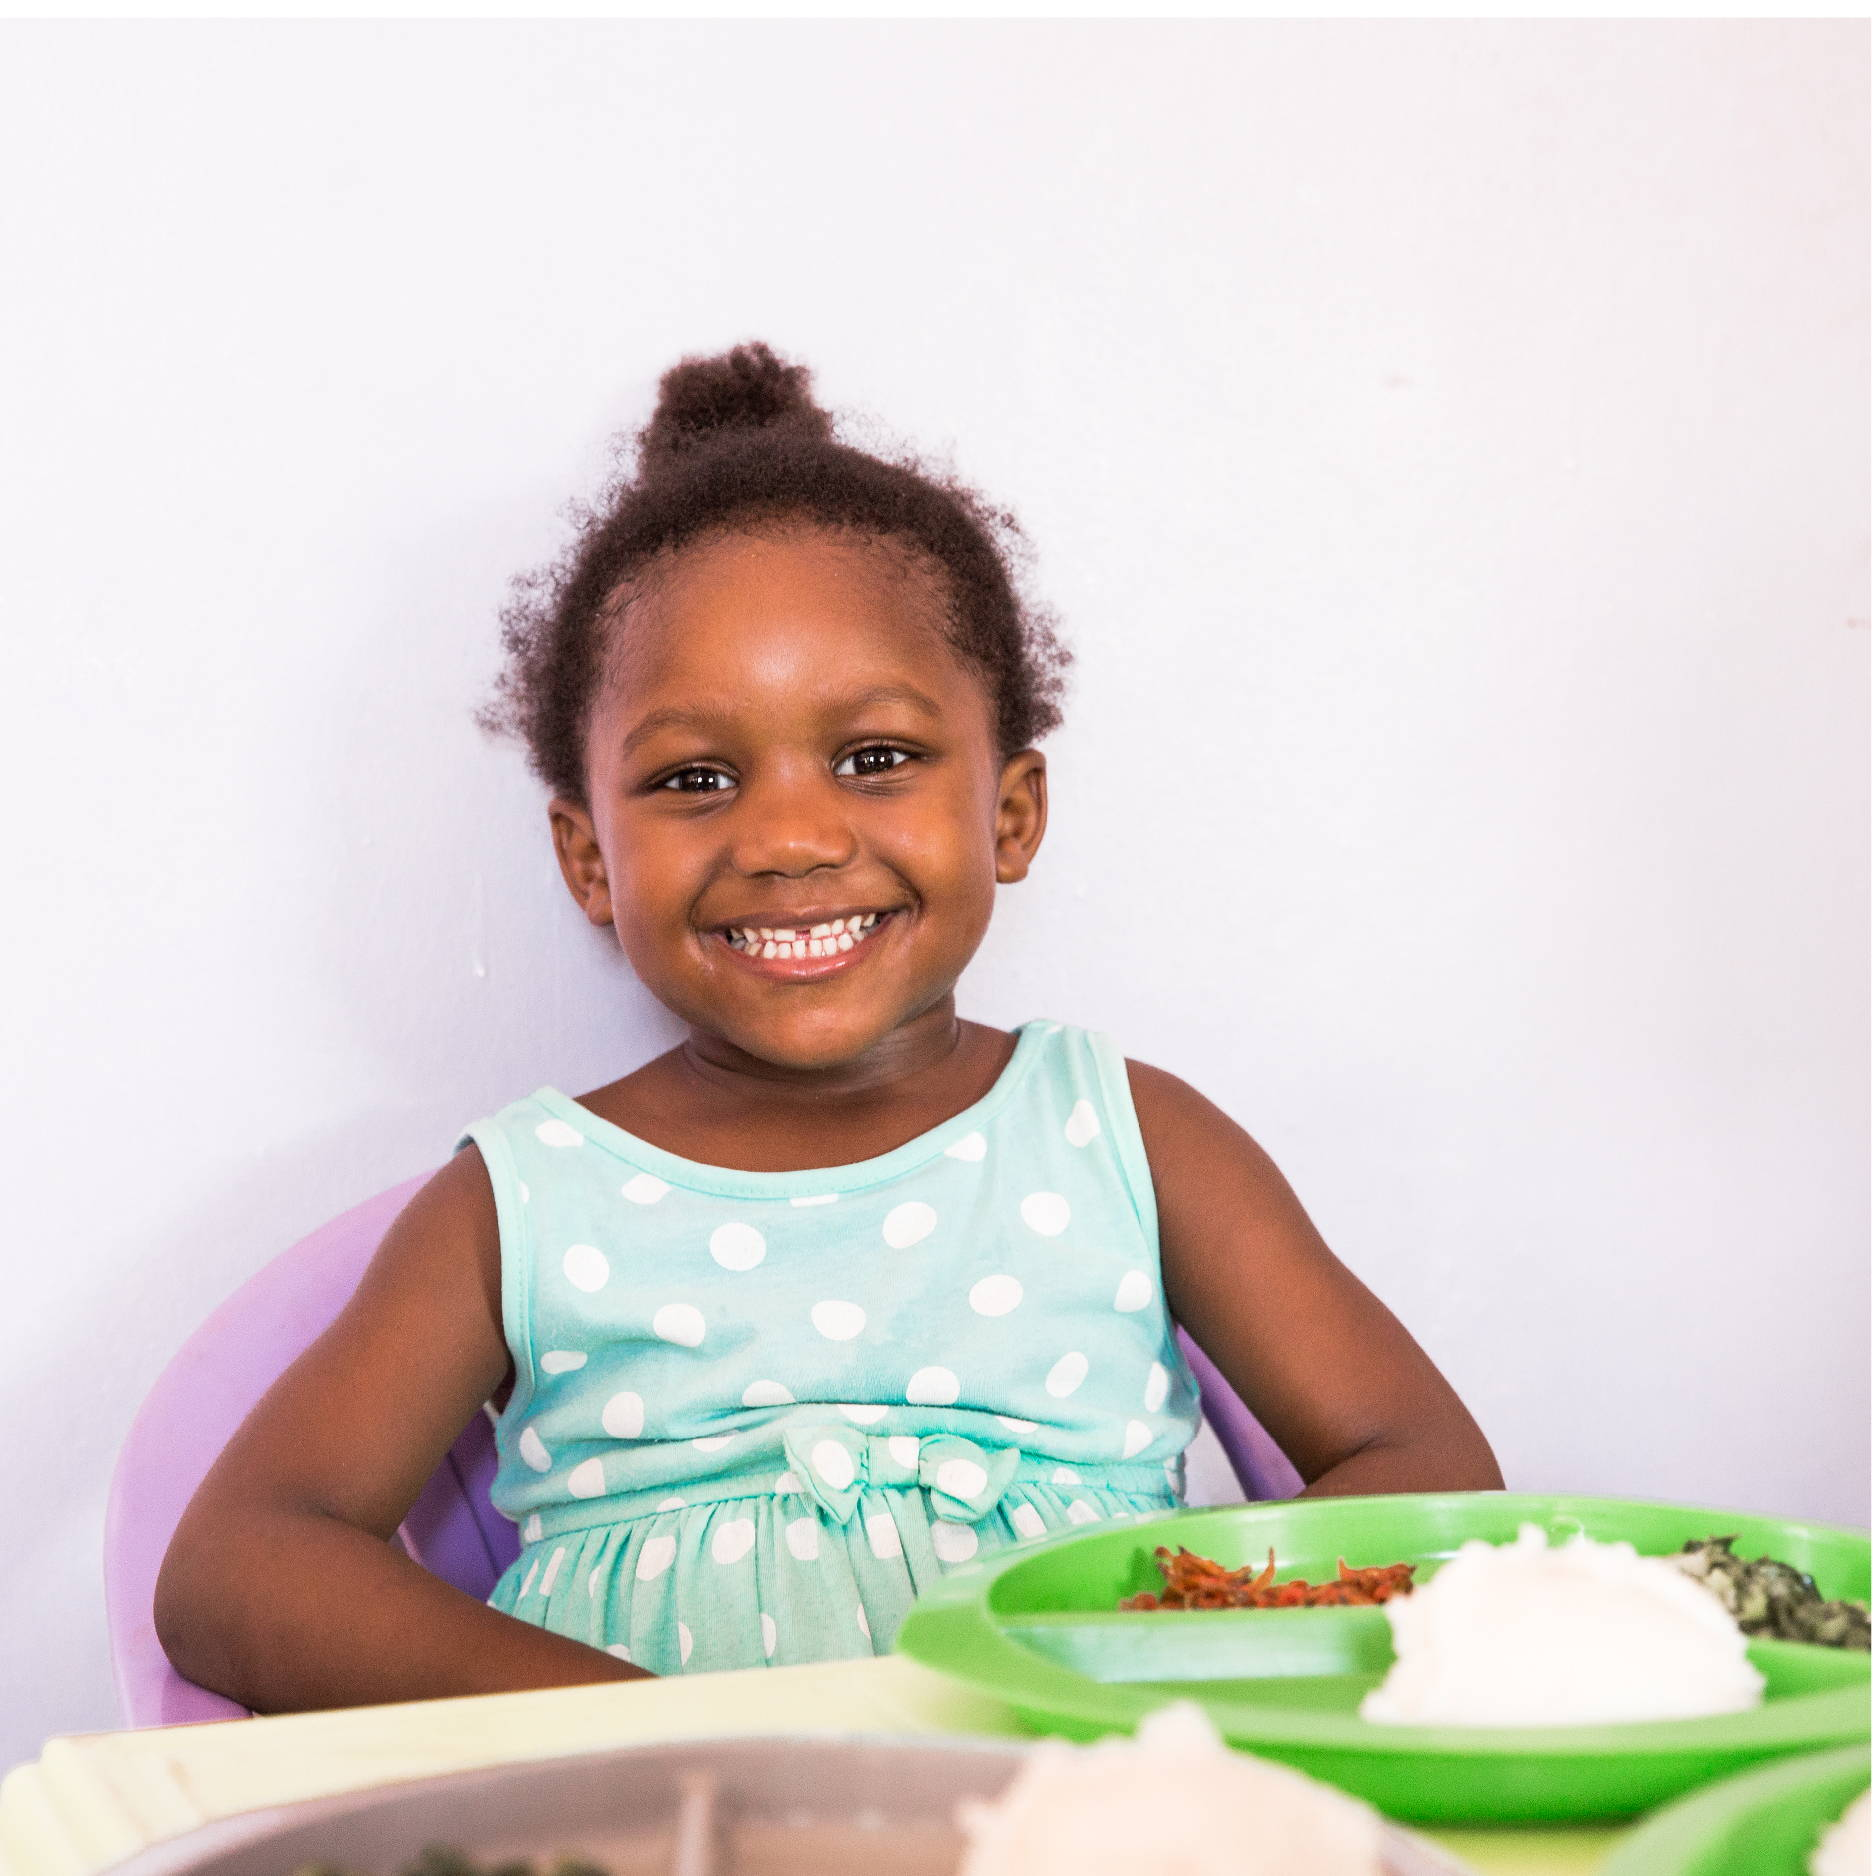 A small Zambian girl in a blue polka dotted dress gives a big smile, showing her teeth, as she sits to eat lunch.